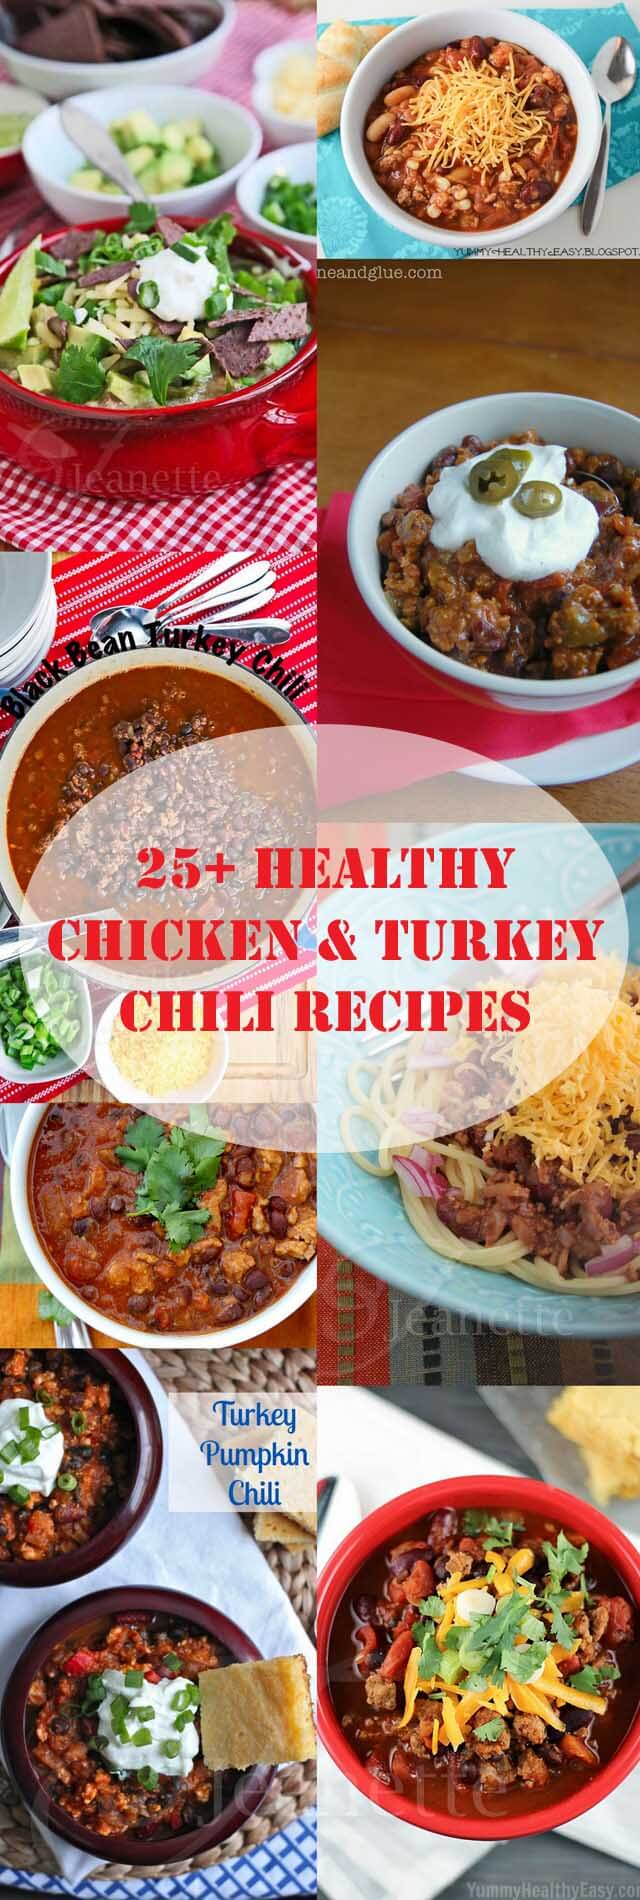 25+ Healthy Chicken and Turkey Chili Recipes